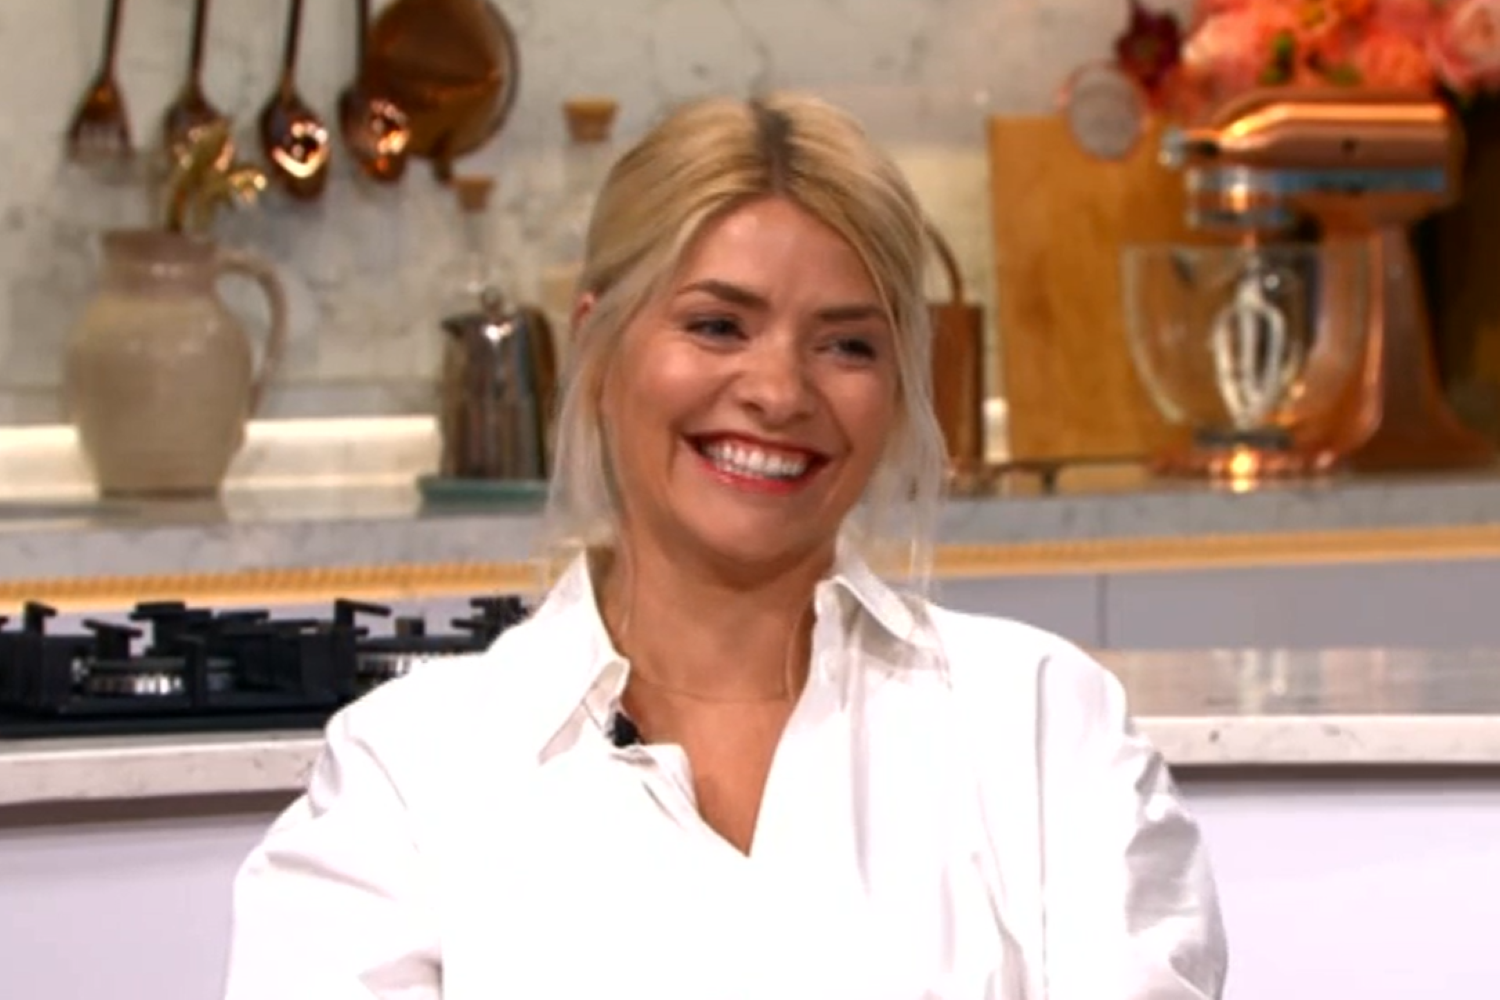 This Morning: Holly Willoughby nearly exposes her underwear